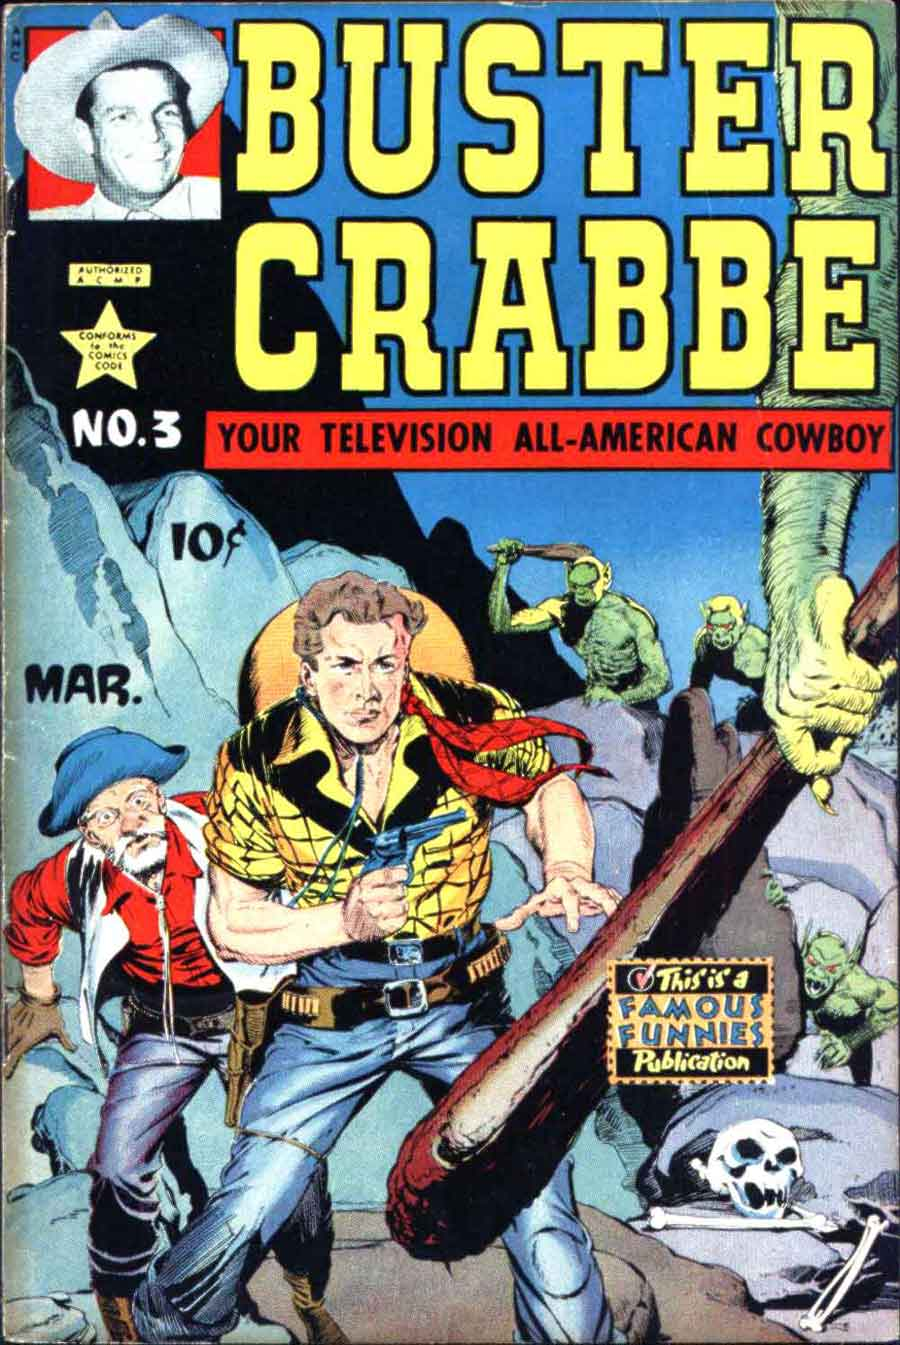 Buster Crabbe v1 #3 golden age comic book cover art by Al Williamson